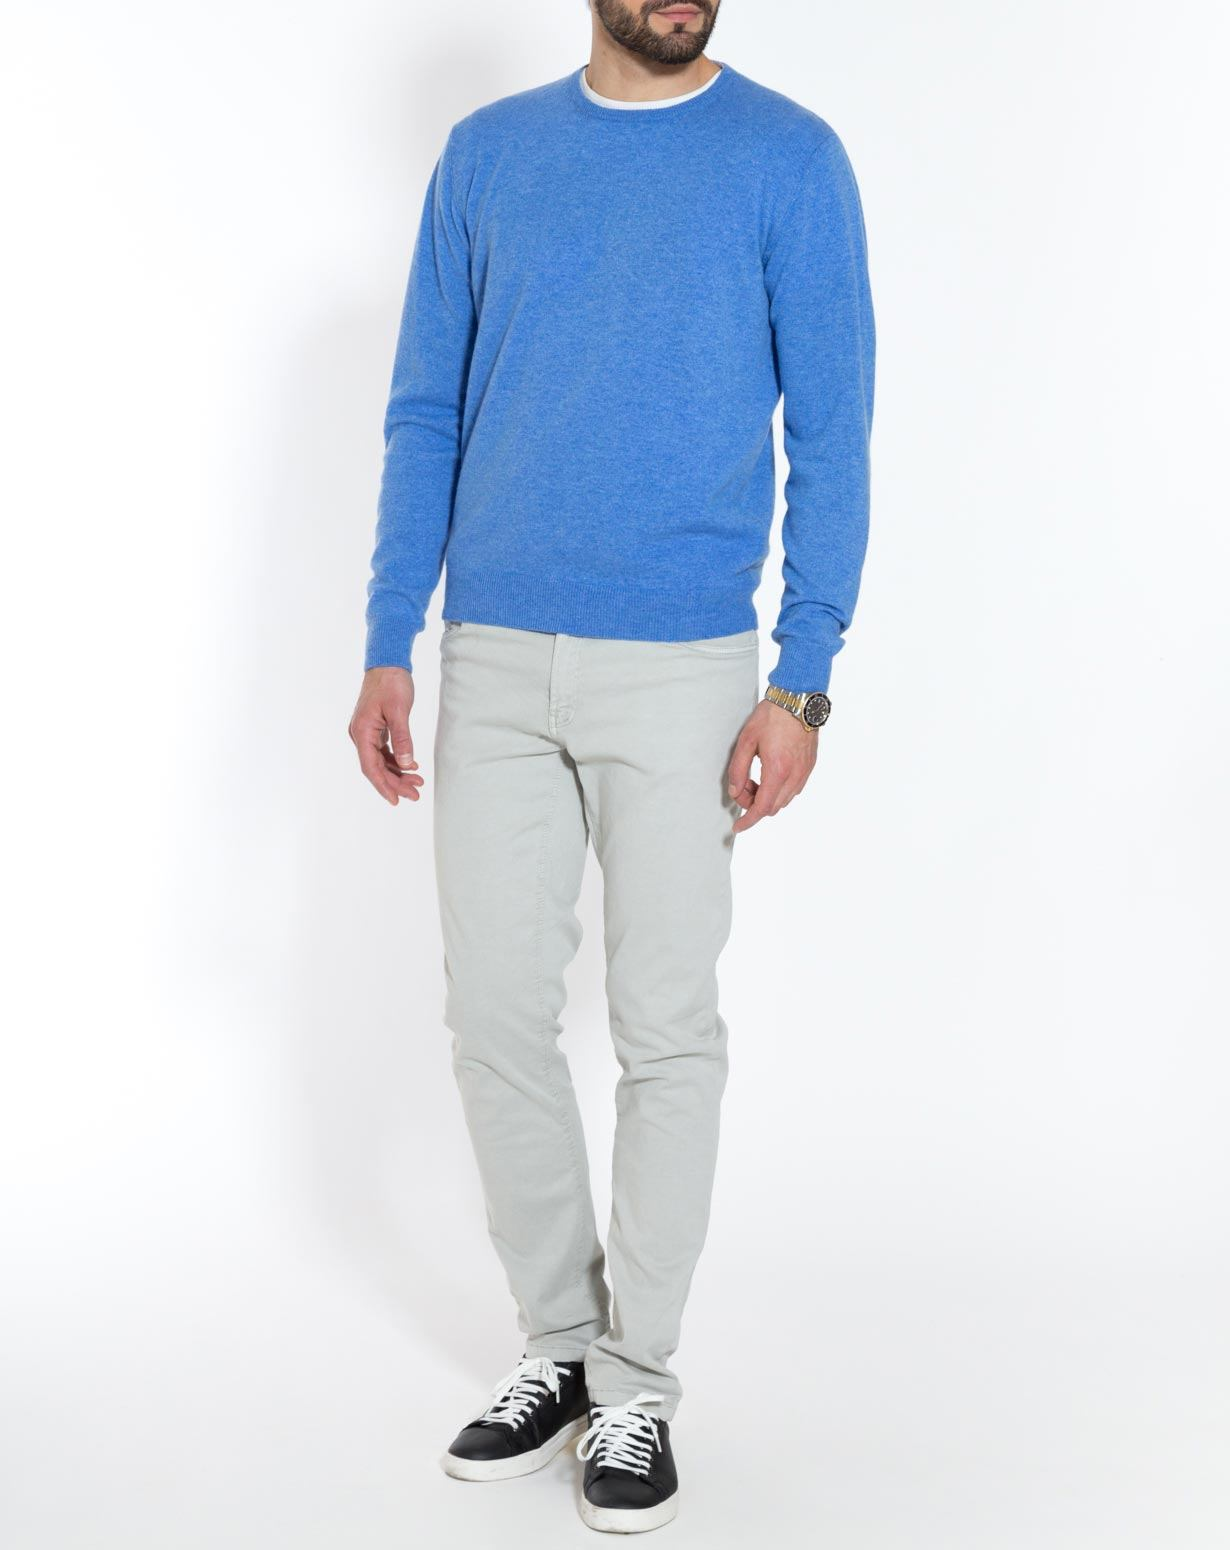 how to wear a crew neck sweater men